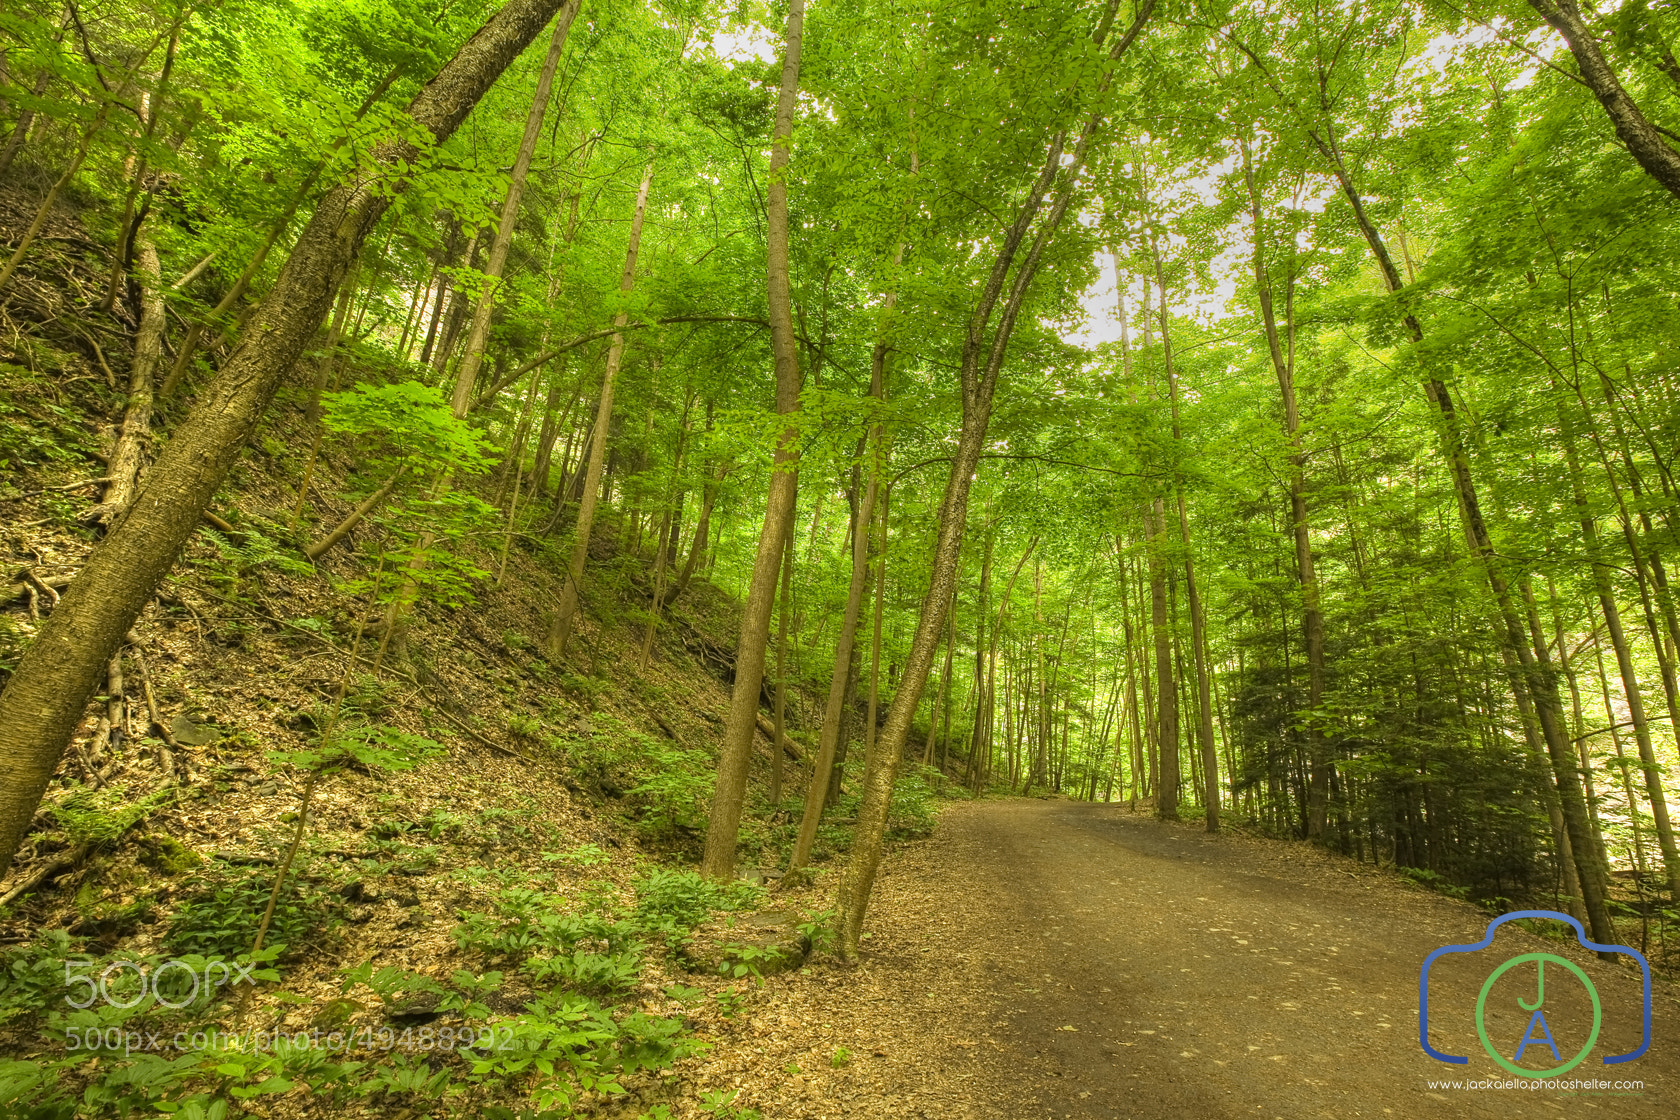 Photograph Hiking Path in a Forest - Green Leaf Canopy by Jack L. Aiello on 500px